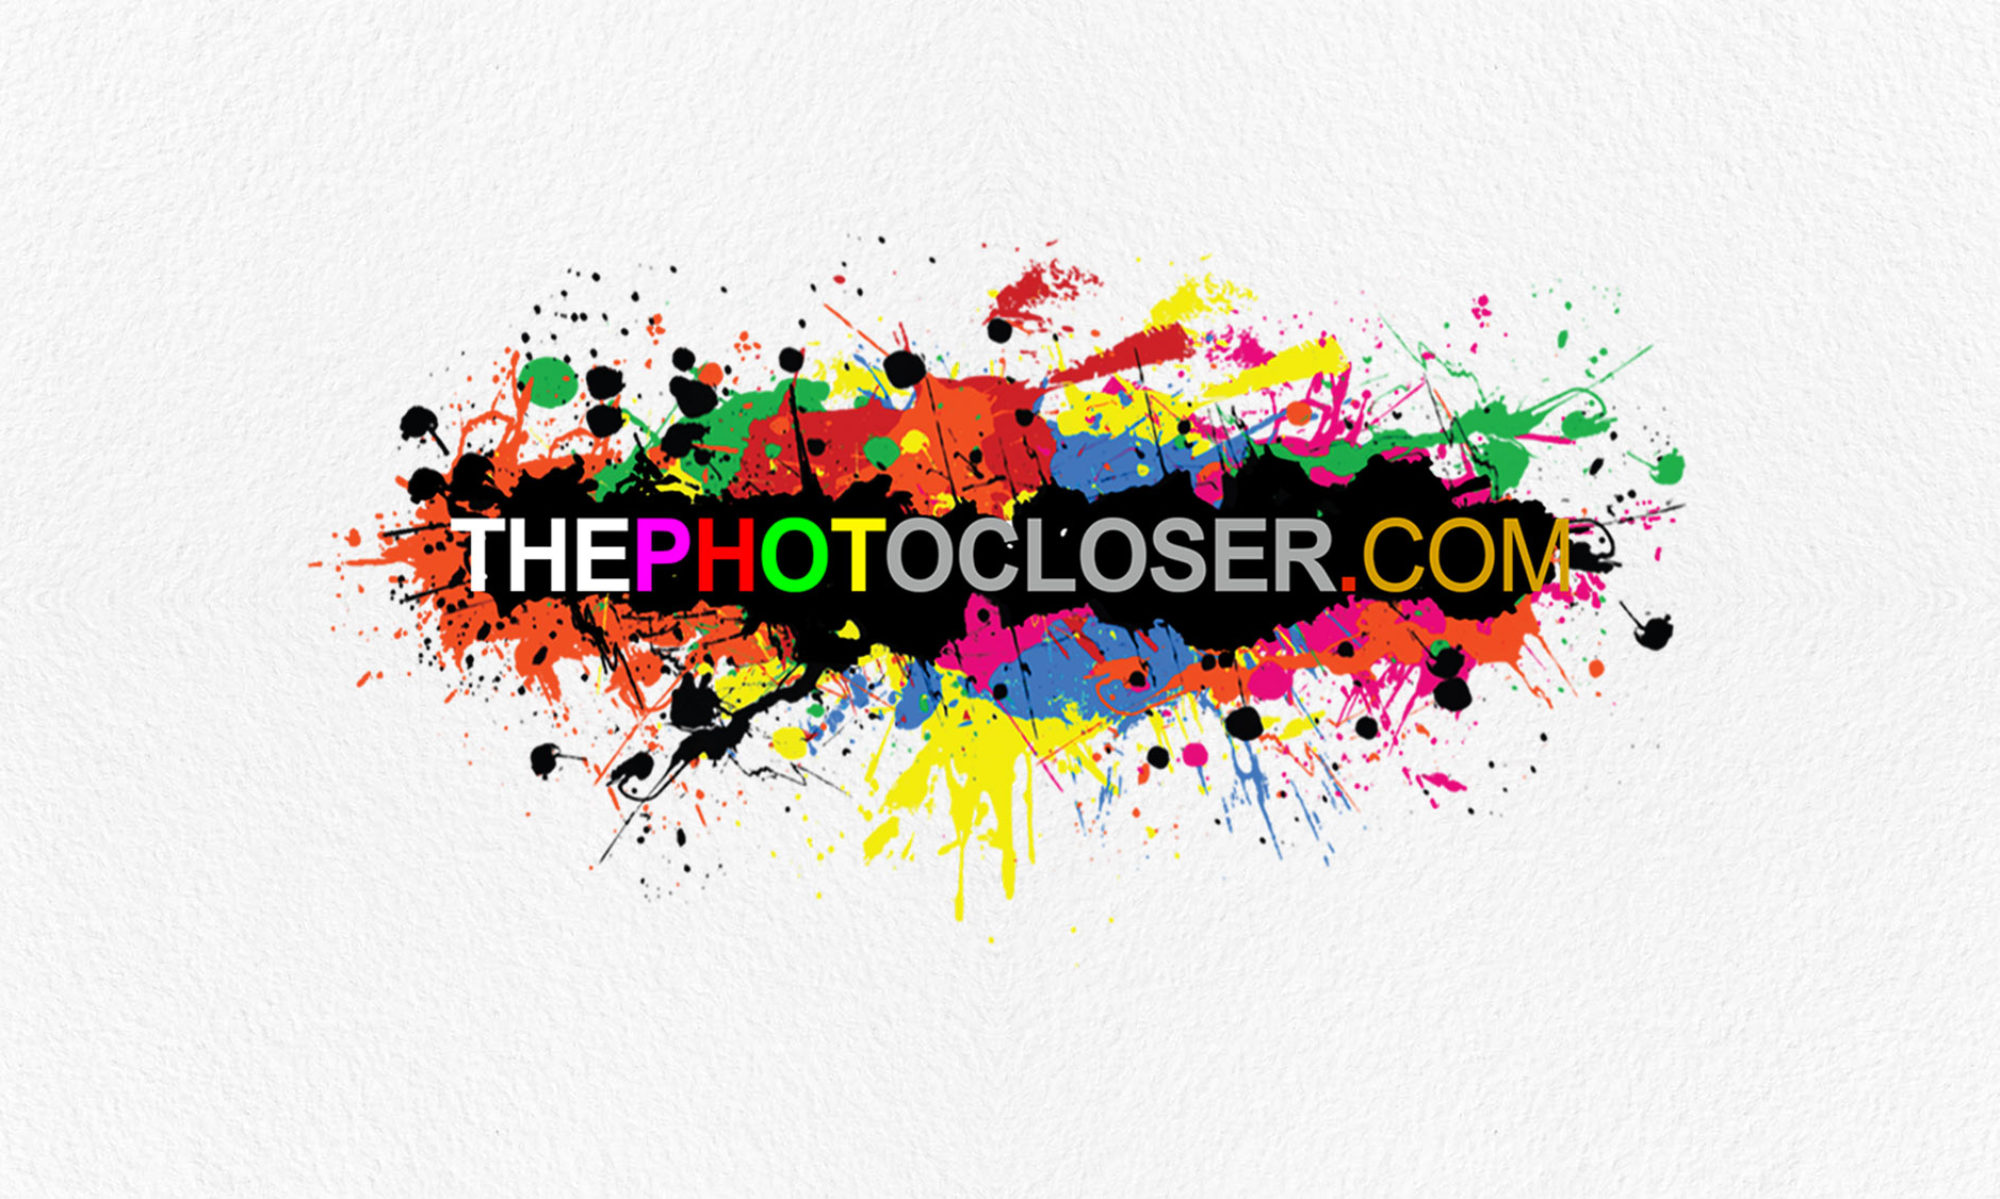 ThePhotoCloser Blog